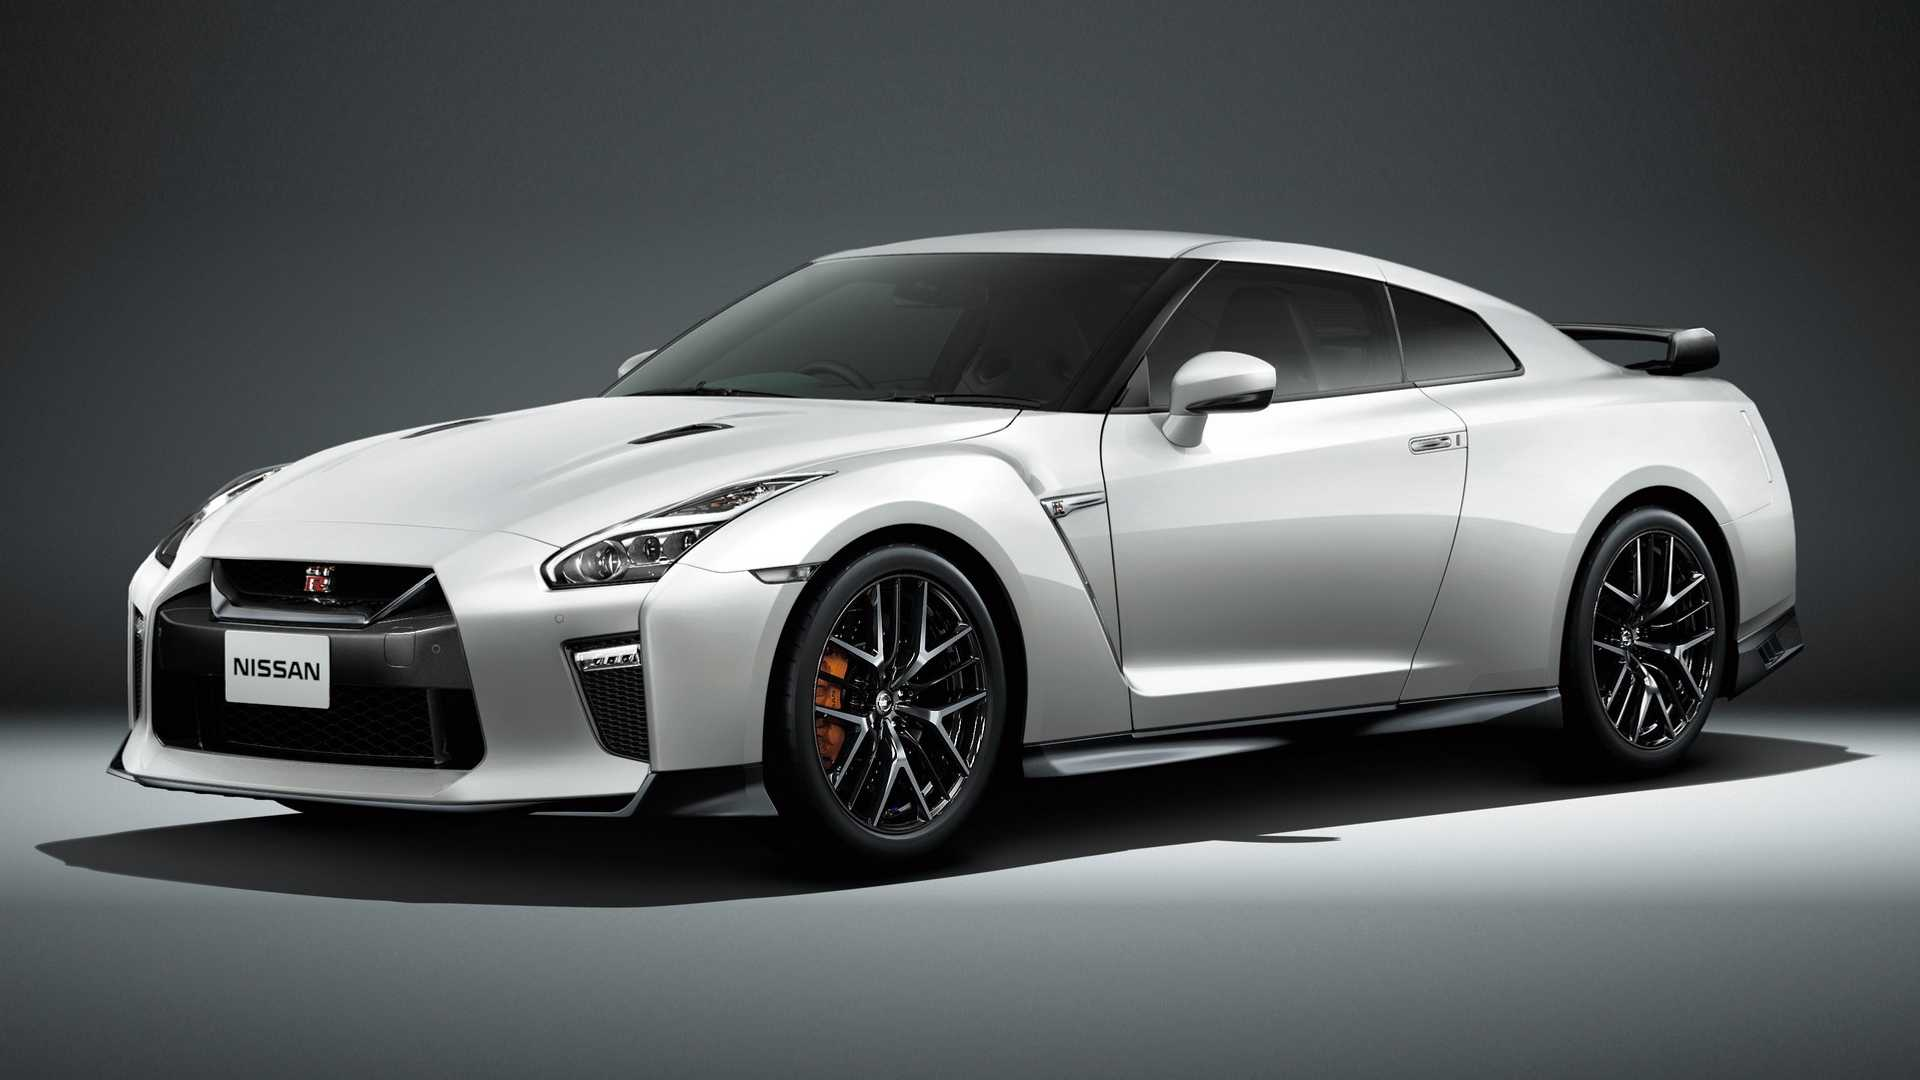 89 All New 2019 Nissan Gt R Specs